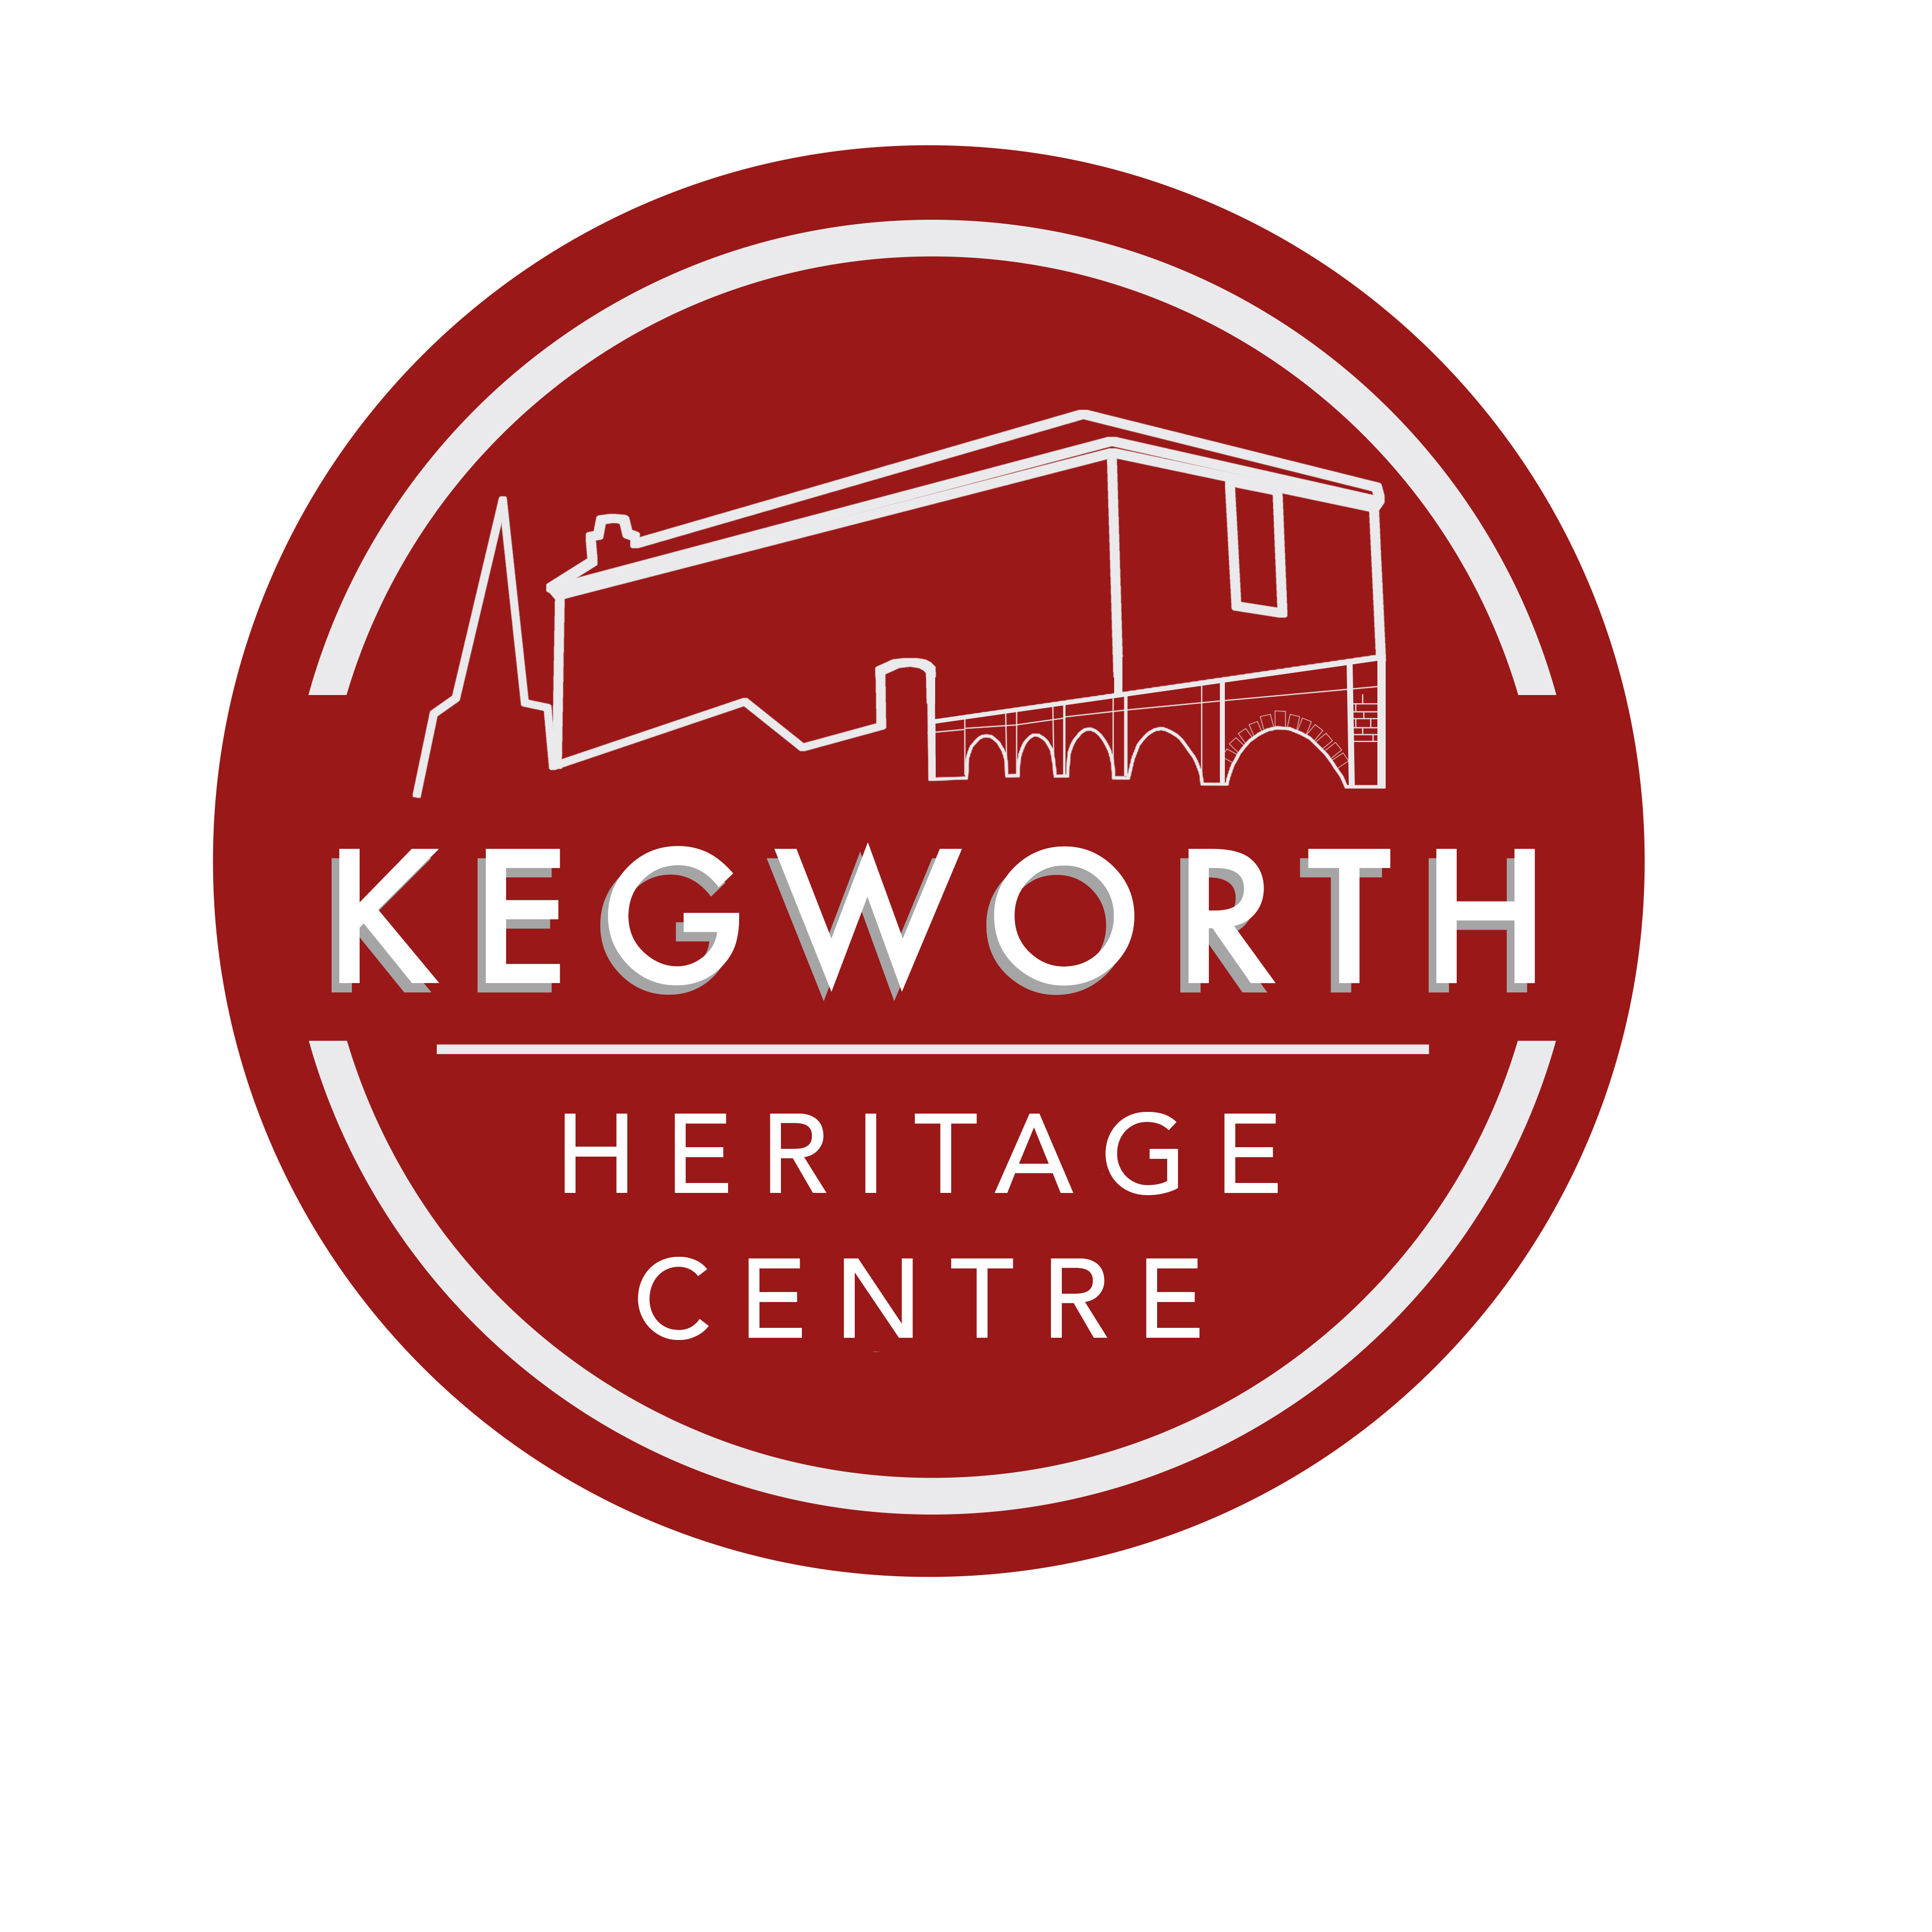 Kegworth Heritage Centre